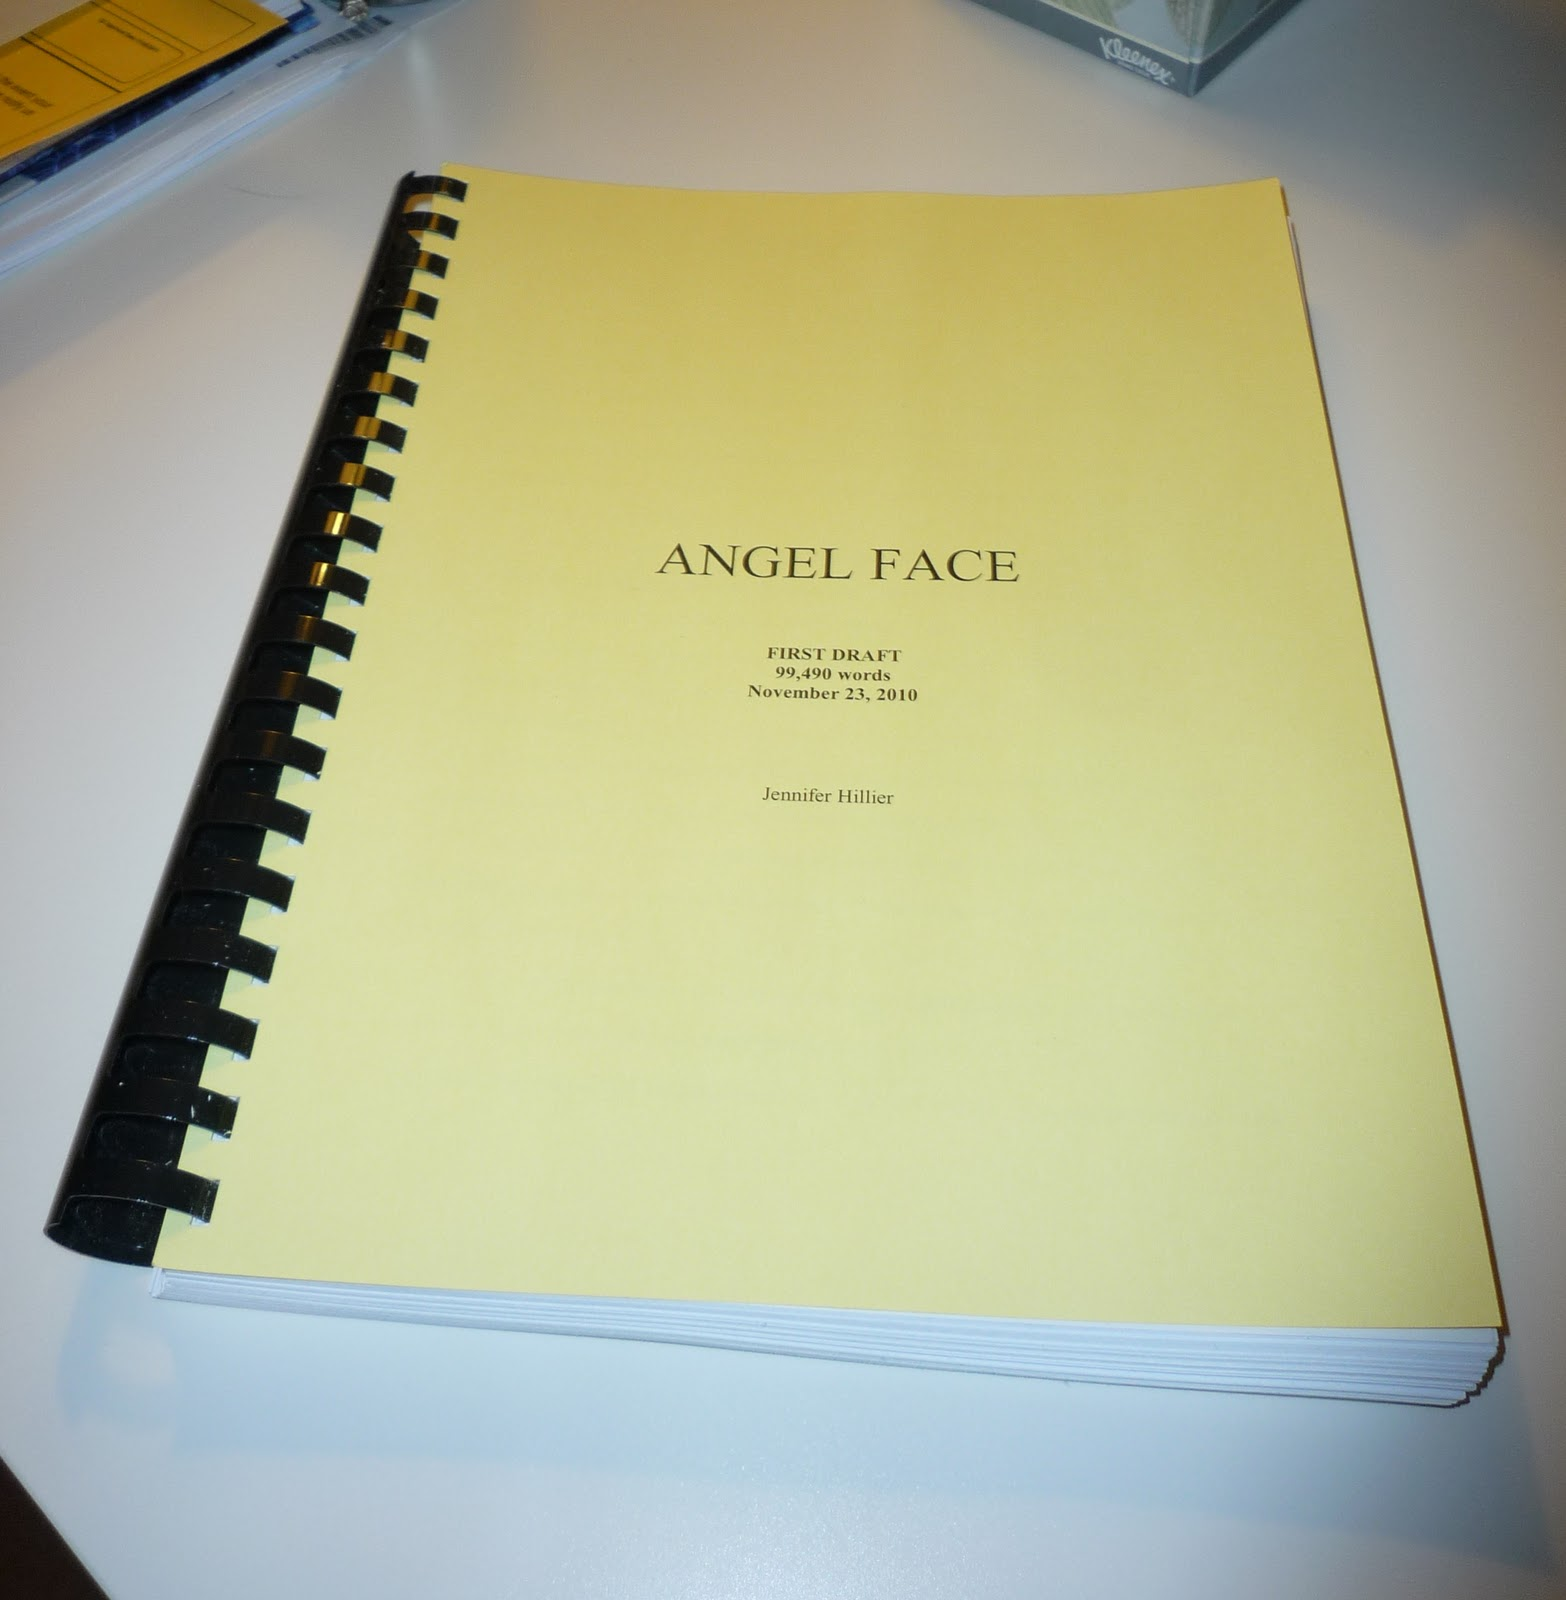 Oh, And I Did Finallye Up With A Working Title As I Was Finishing The  Draft Back In November: Angel Face We'll See If It Sticks